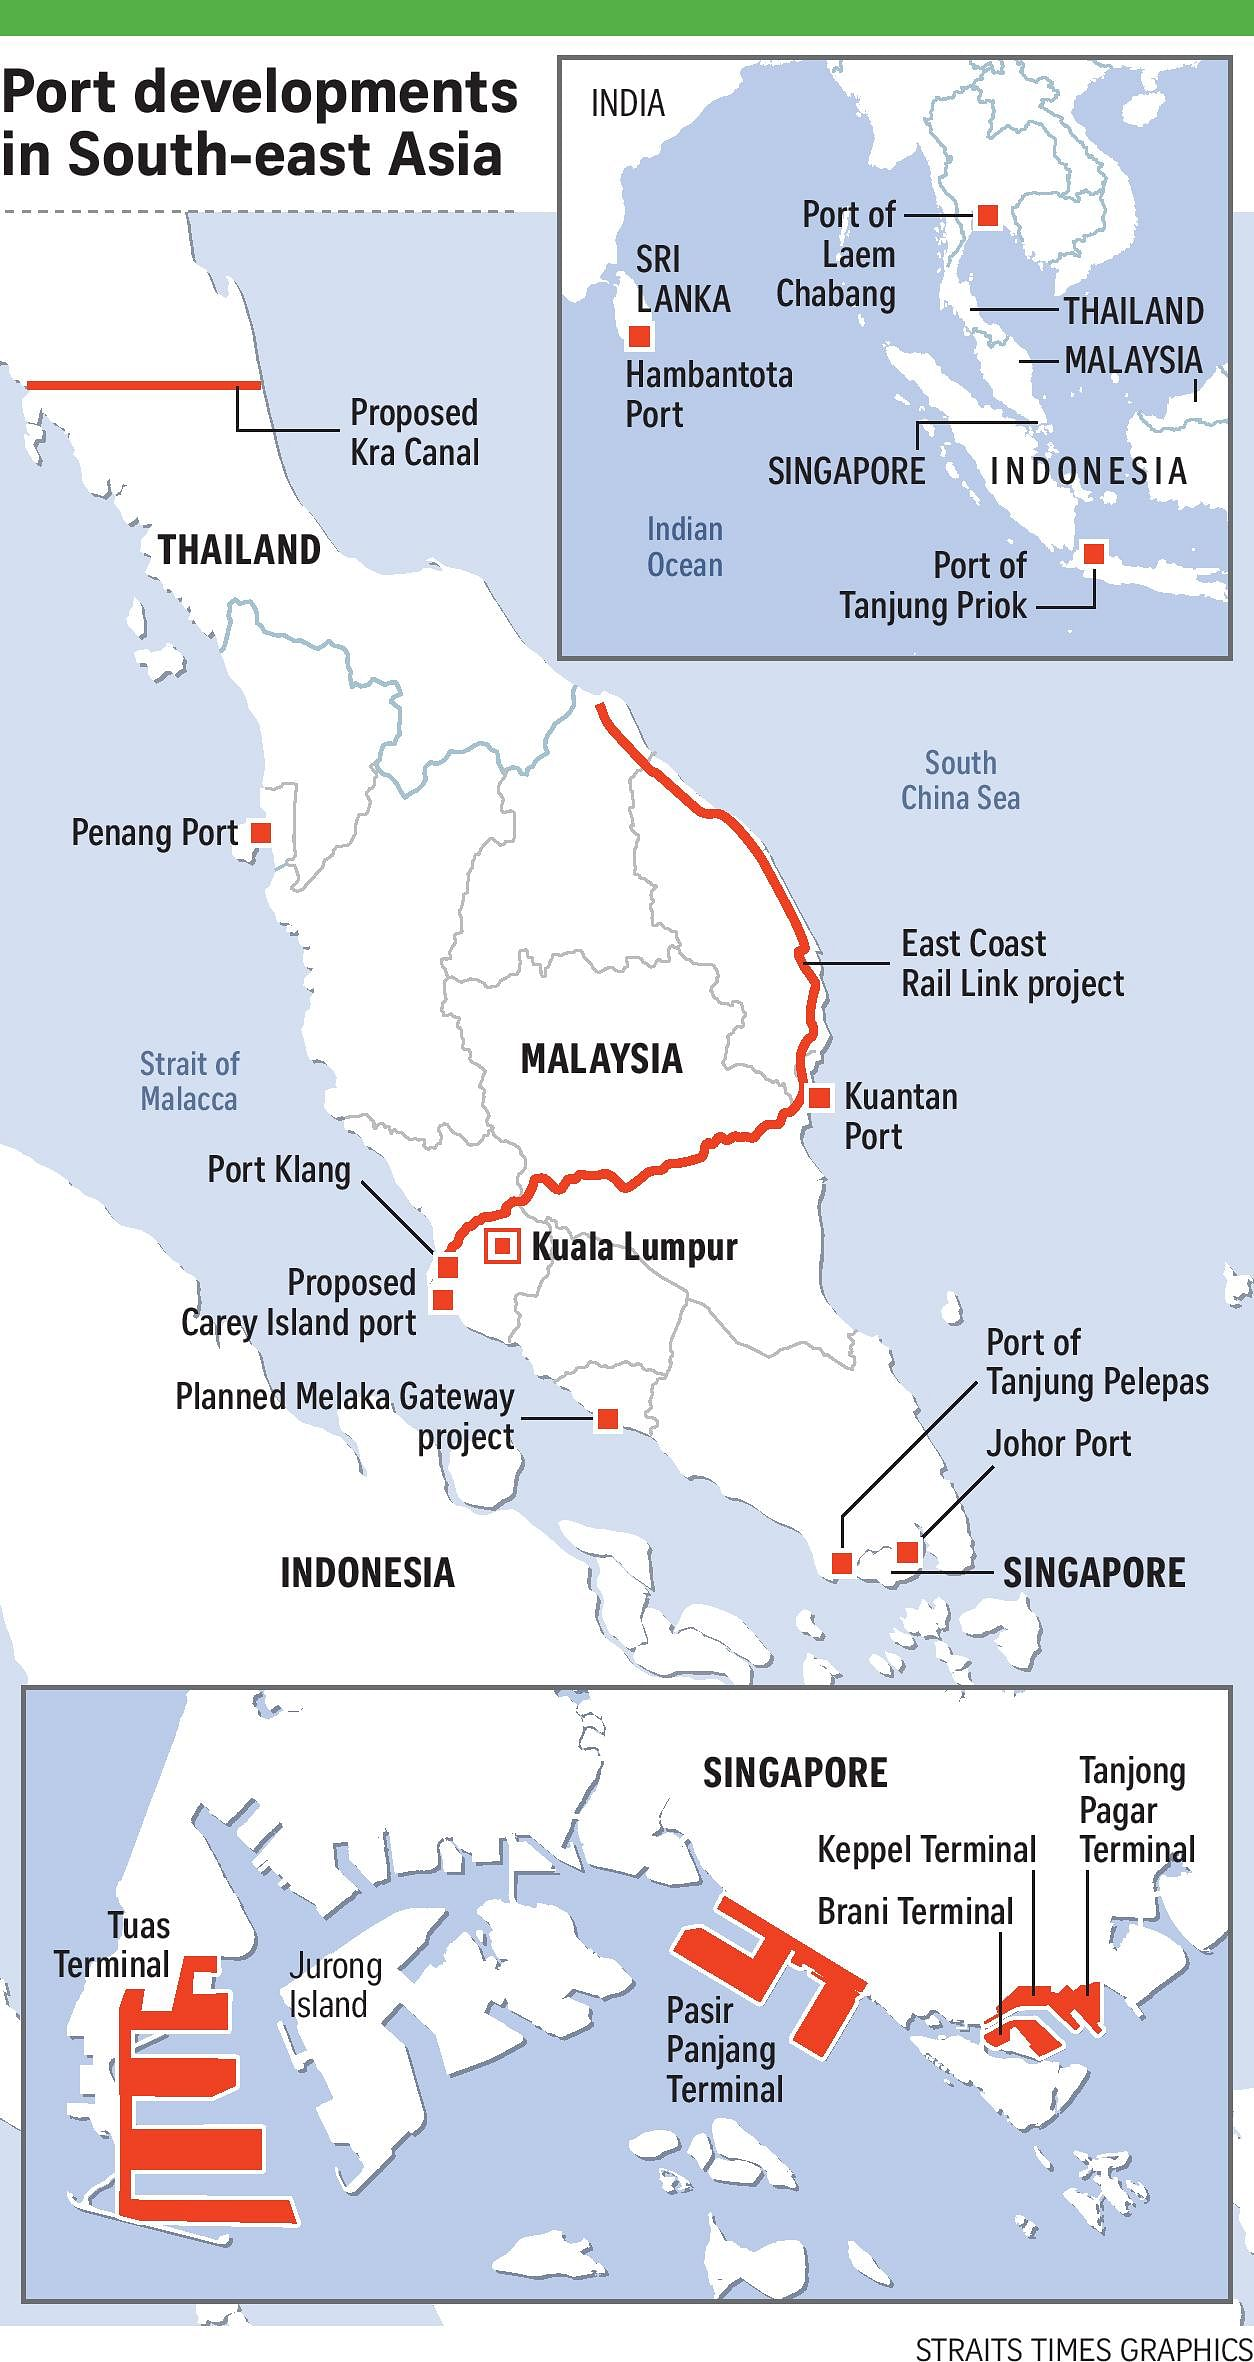 Singapore geared up to keep its spot as major port, Business